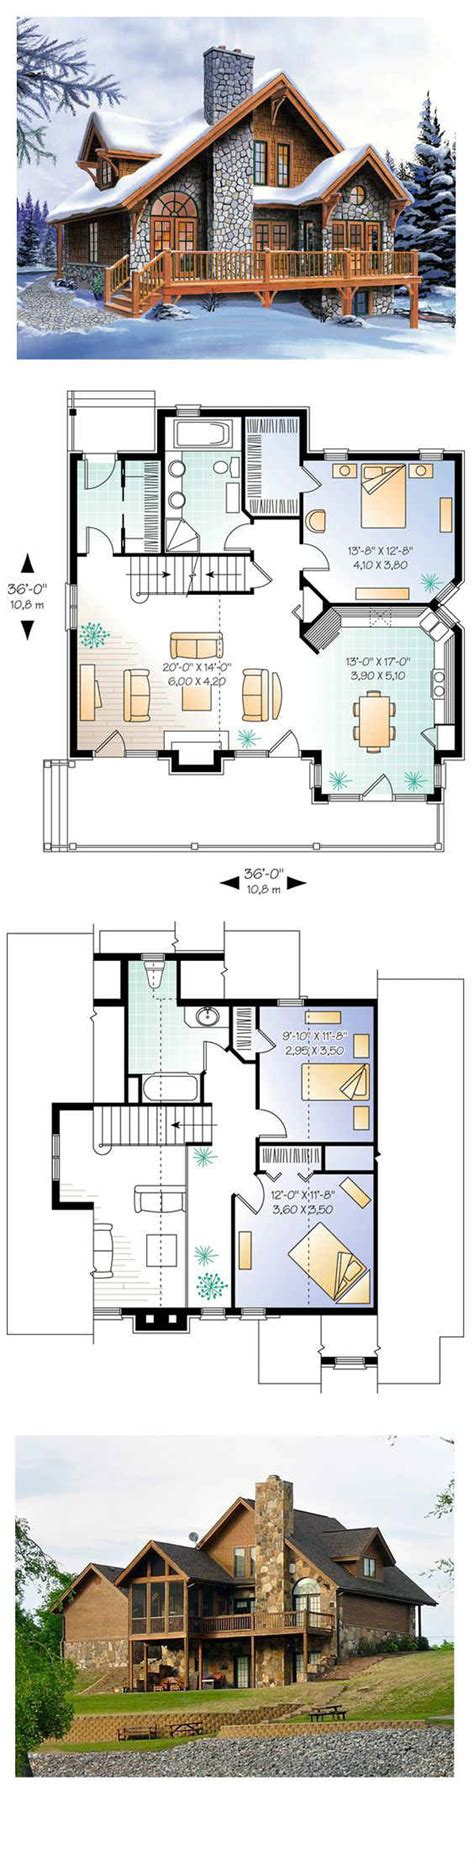 different floor plans 28 images 9 perfect different floor plans benifox com different